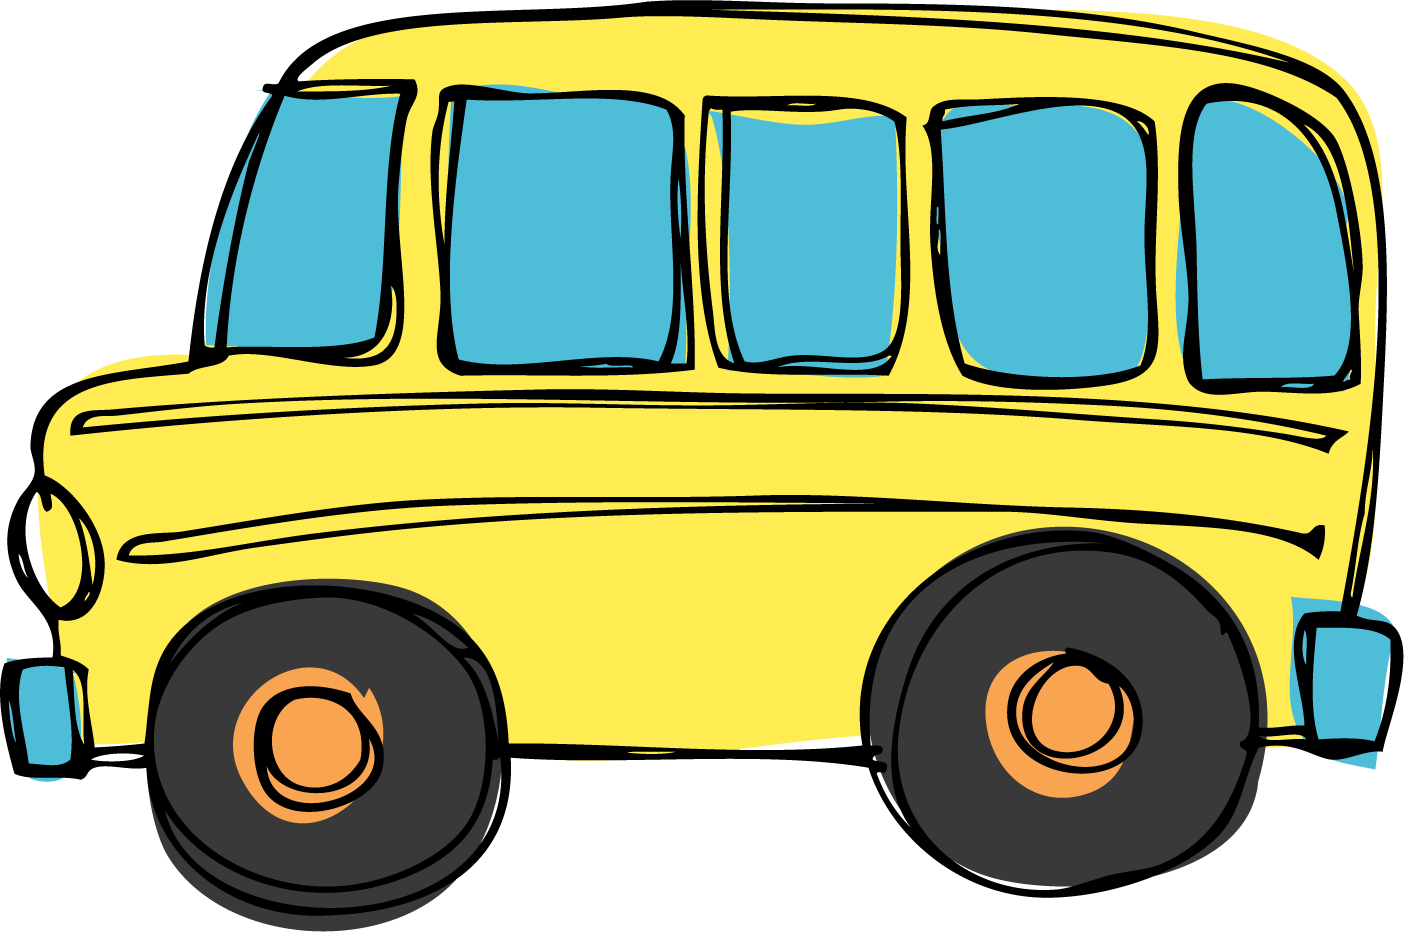 Yellow busses carry young minds.